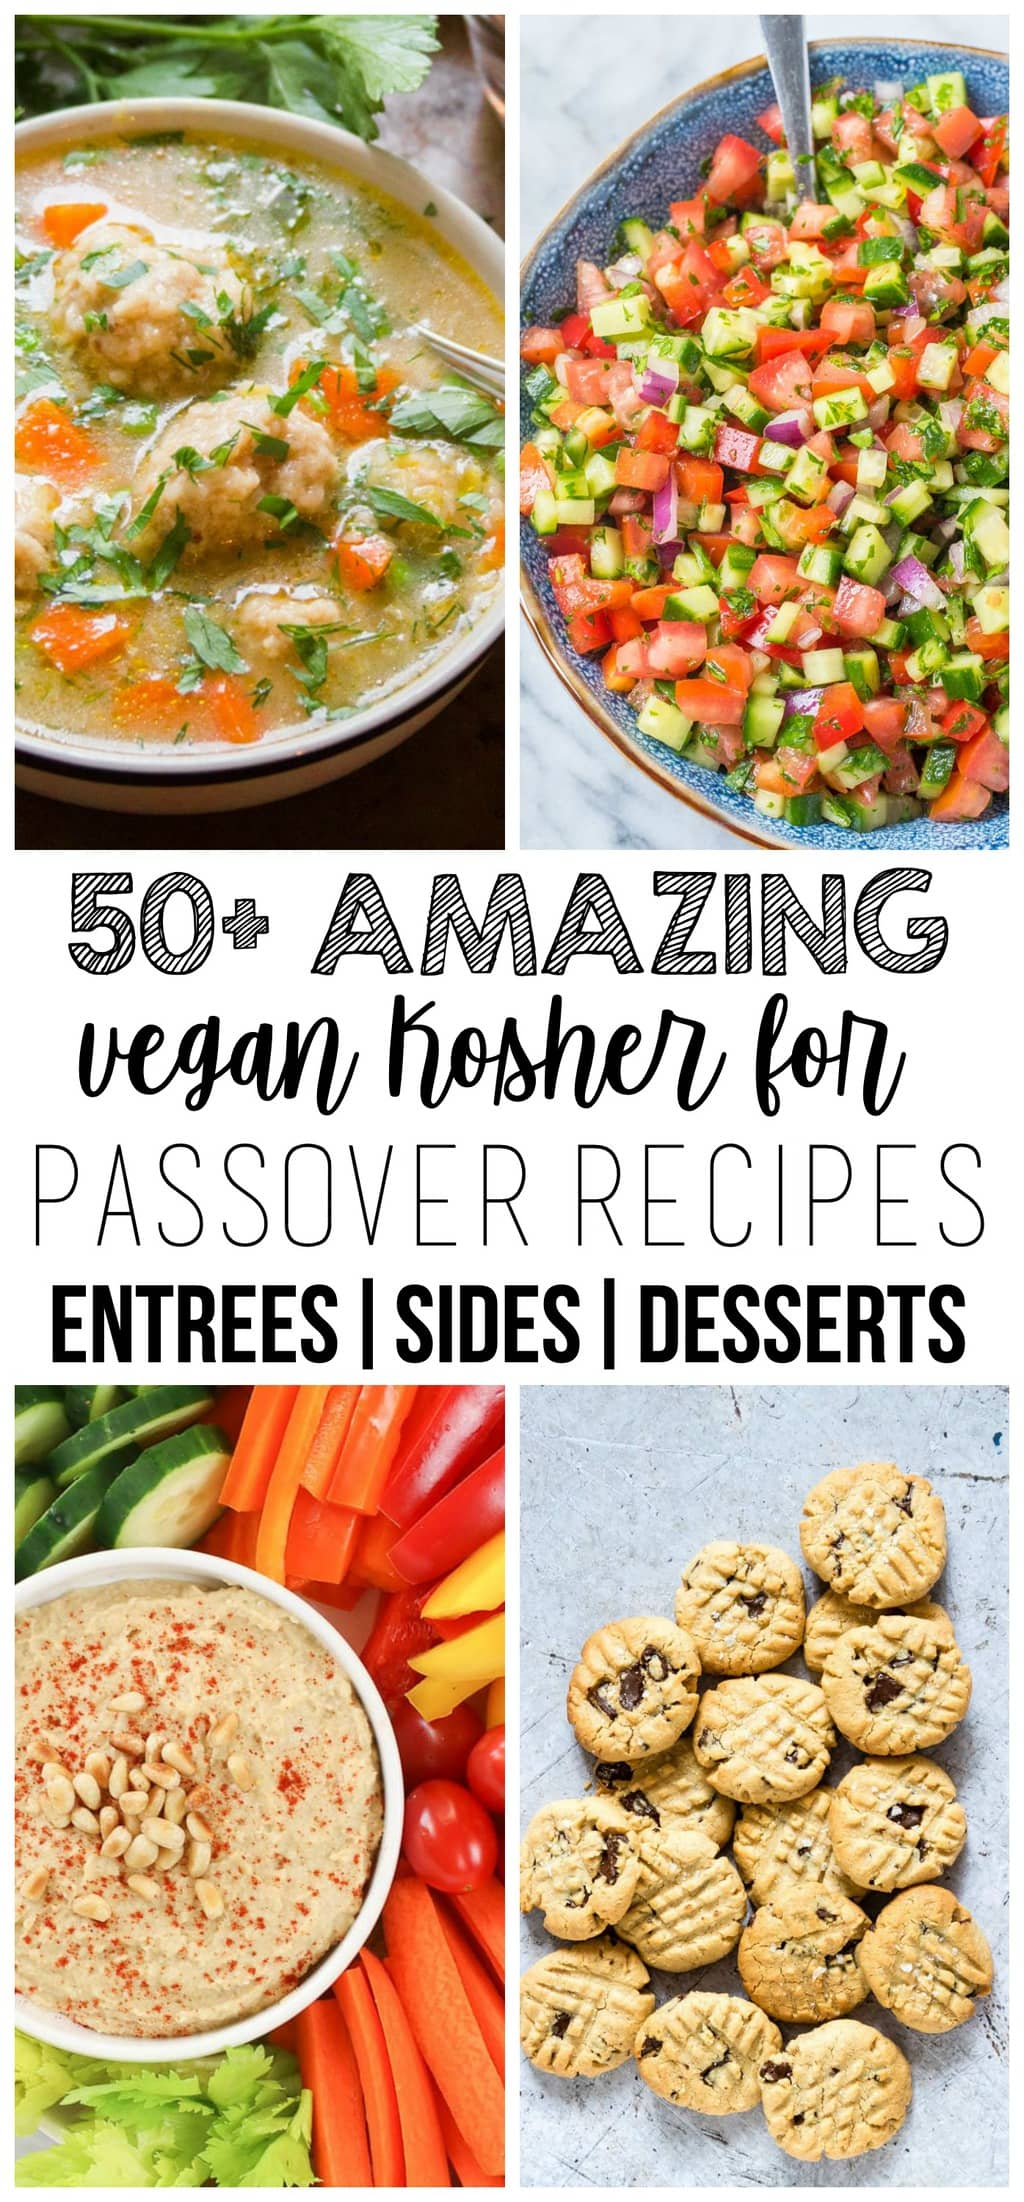 Here is an amazing collection of The 50+ BEST Vegan Kosher For Passover Recipes including main courses, sides, and desserts! All recipes are completely grain-free, so they are perfect for your Passover festivities.